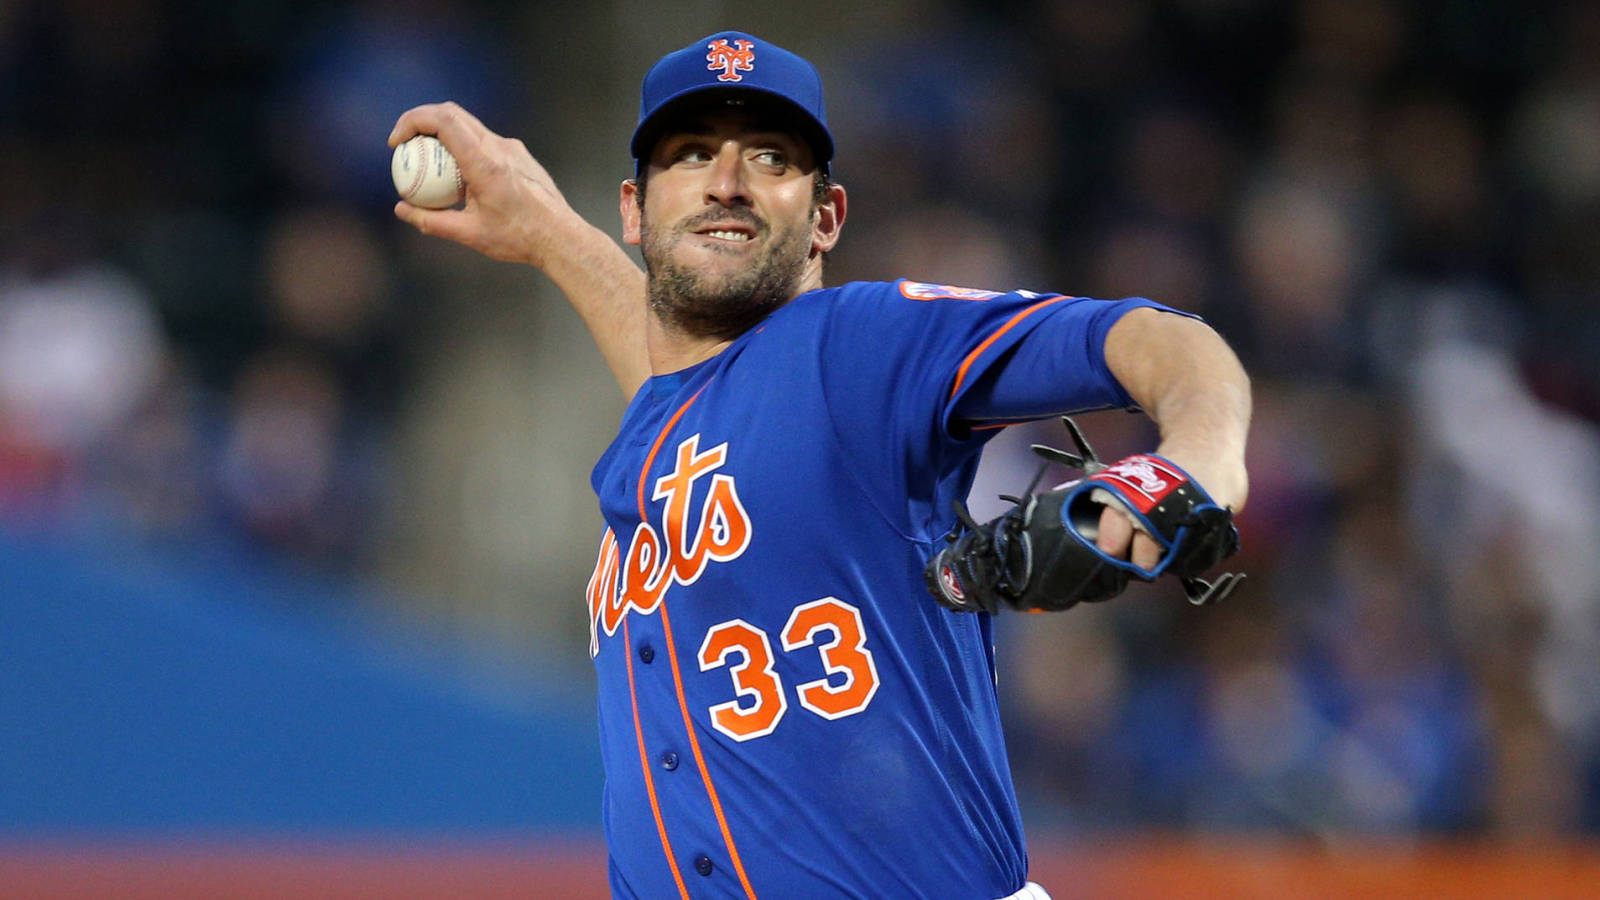 Mets sent team security to check on Matt Harvey after ballpark no-show